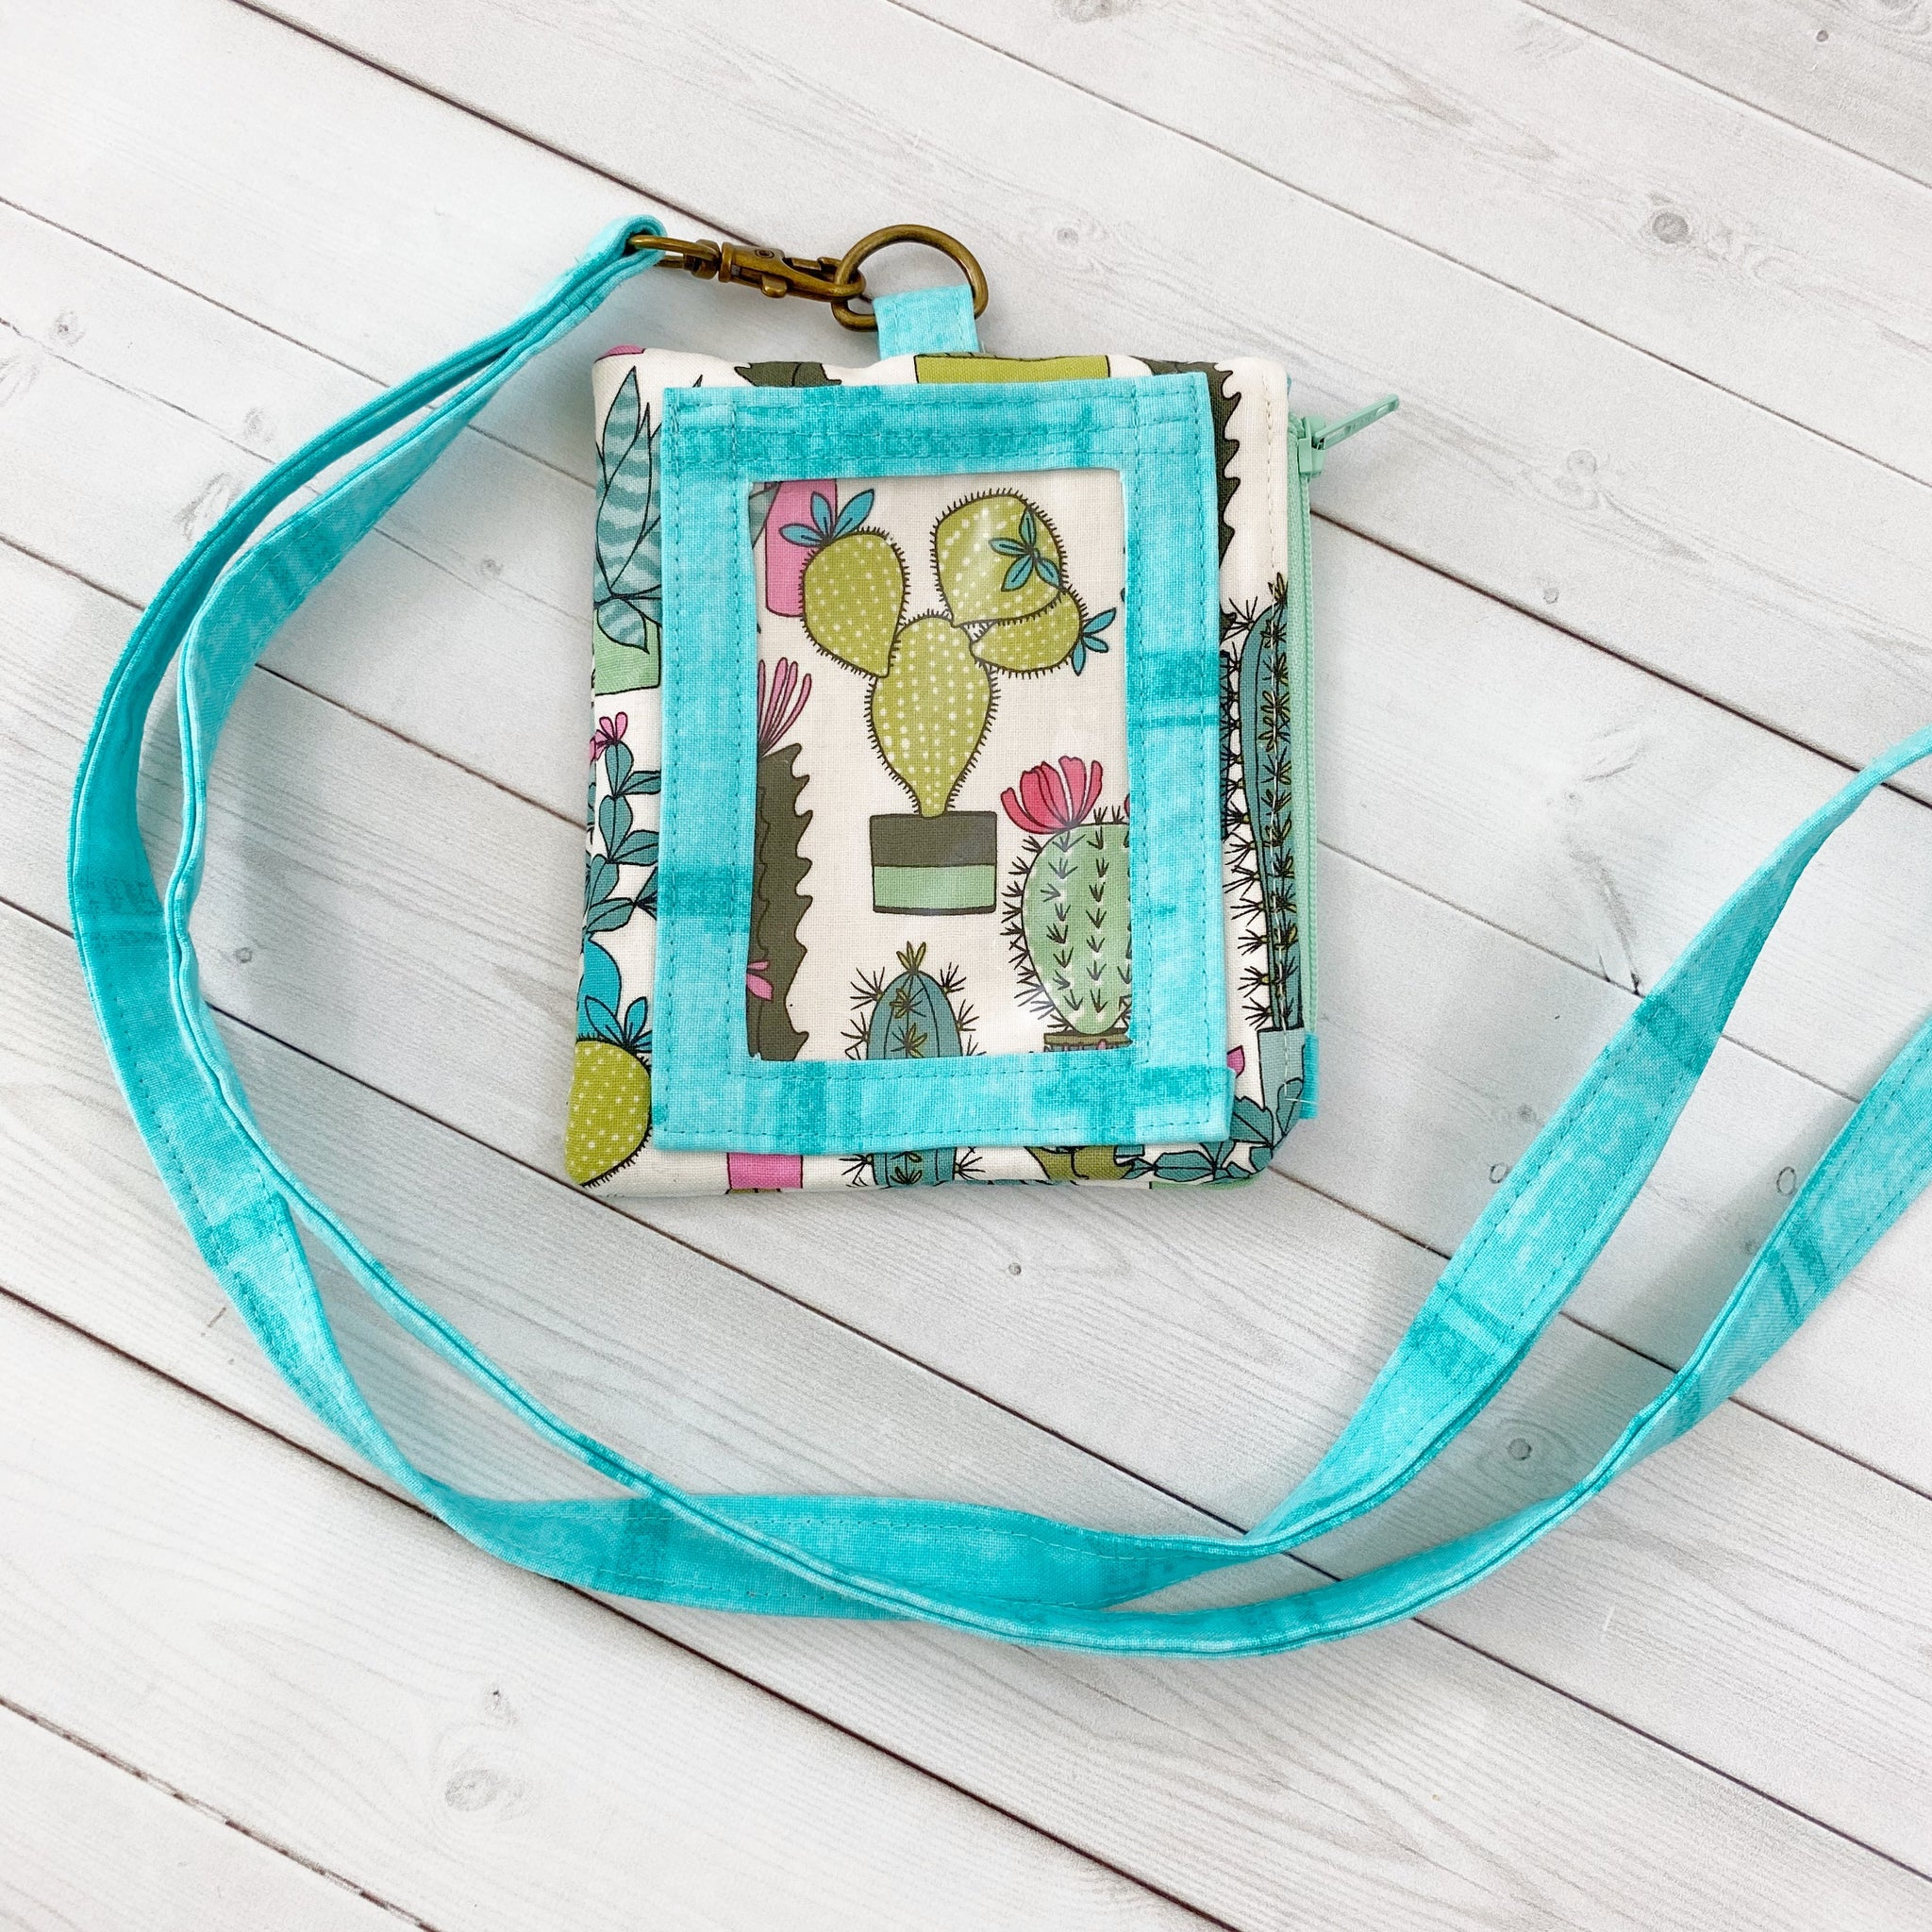 ID Pouch Lanyard - Cacti